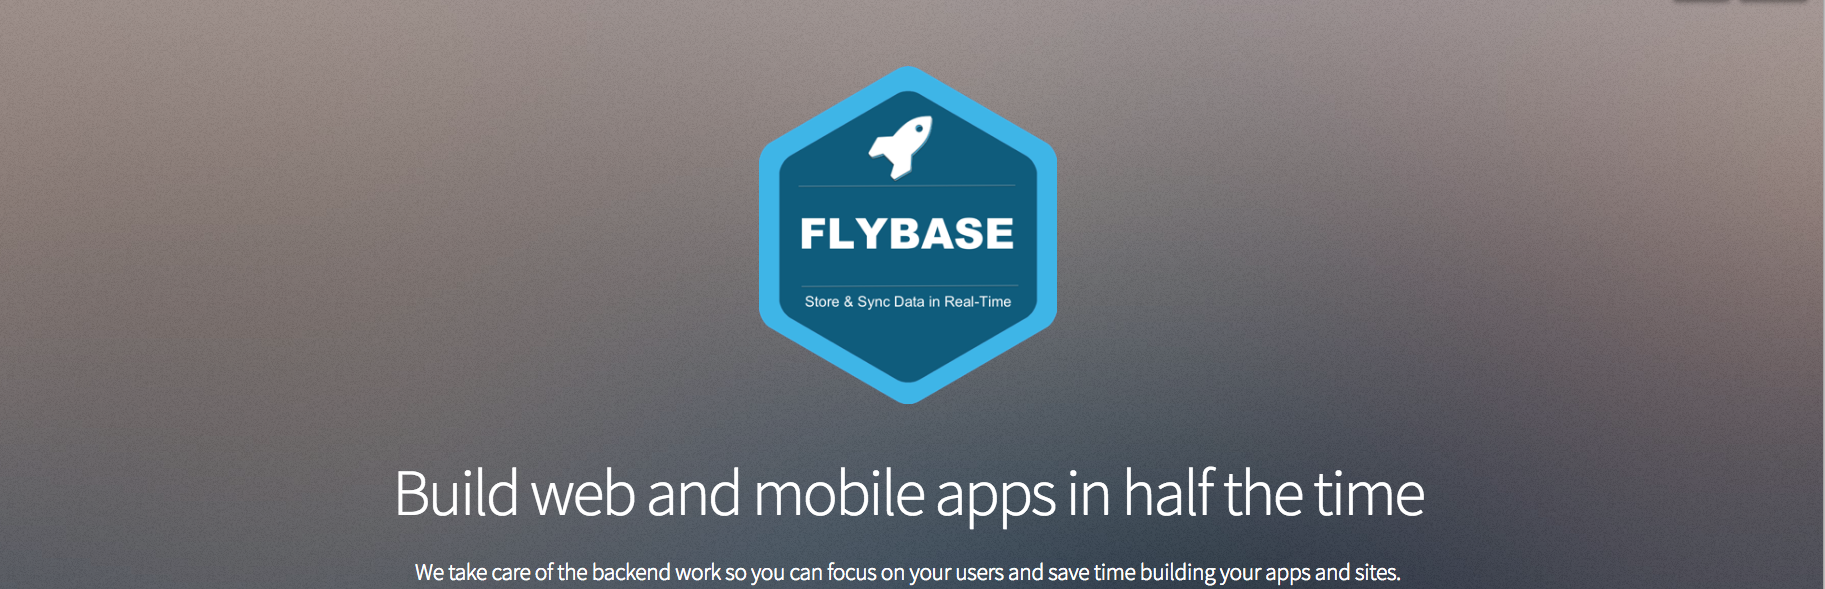 flybase